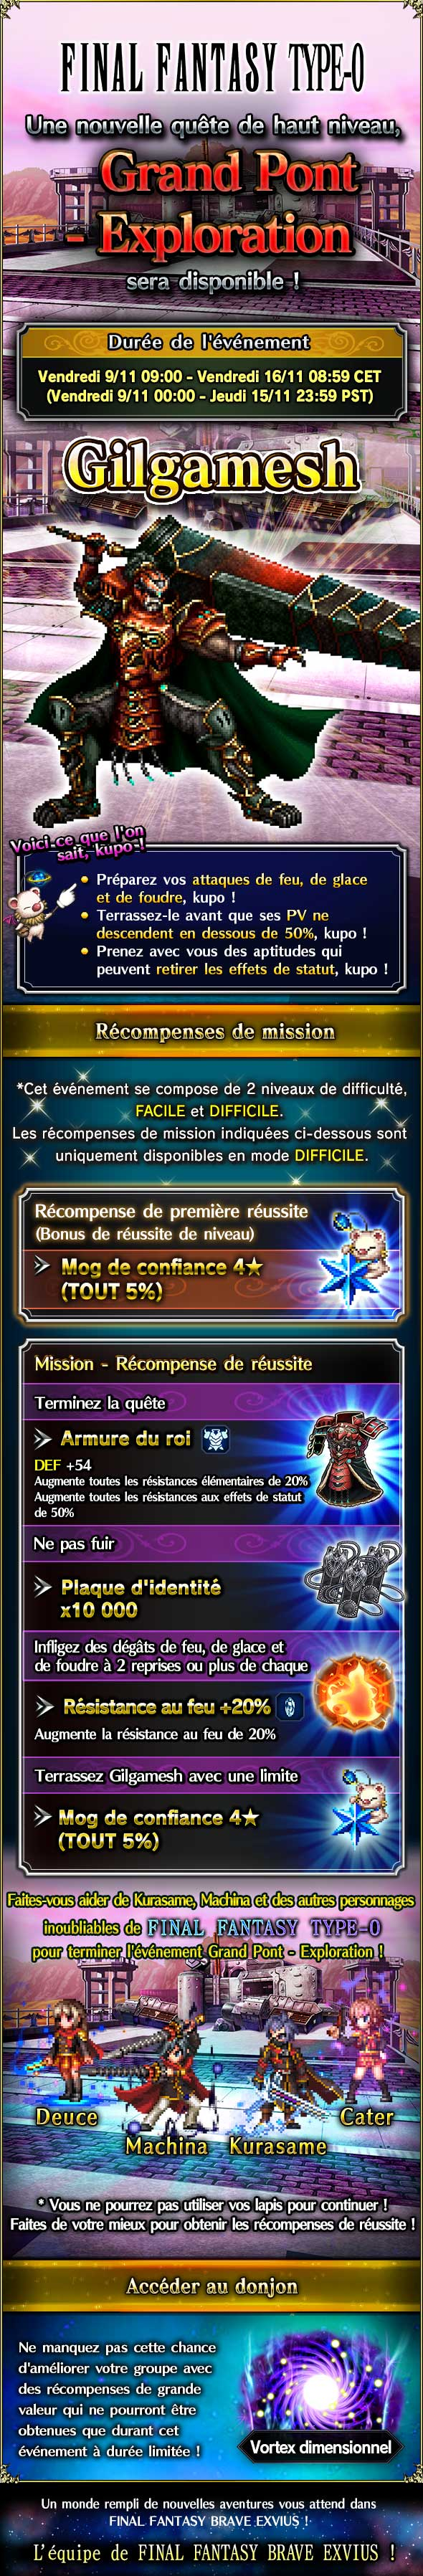 Trial MK FFT-0 - Grand Pont (Exploration) - du 09/11/18 au 16/11/18 20181106FFTYPE0_Exploration